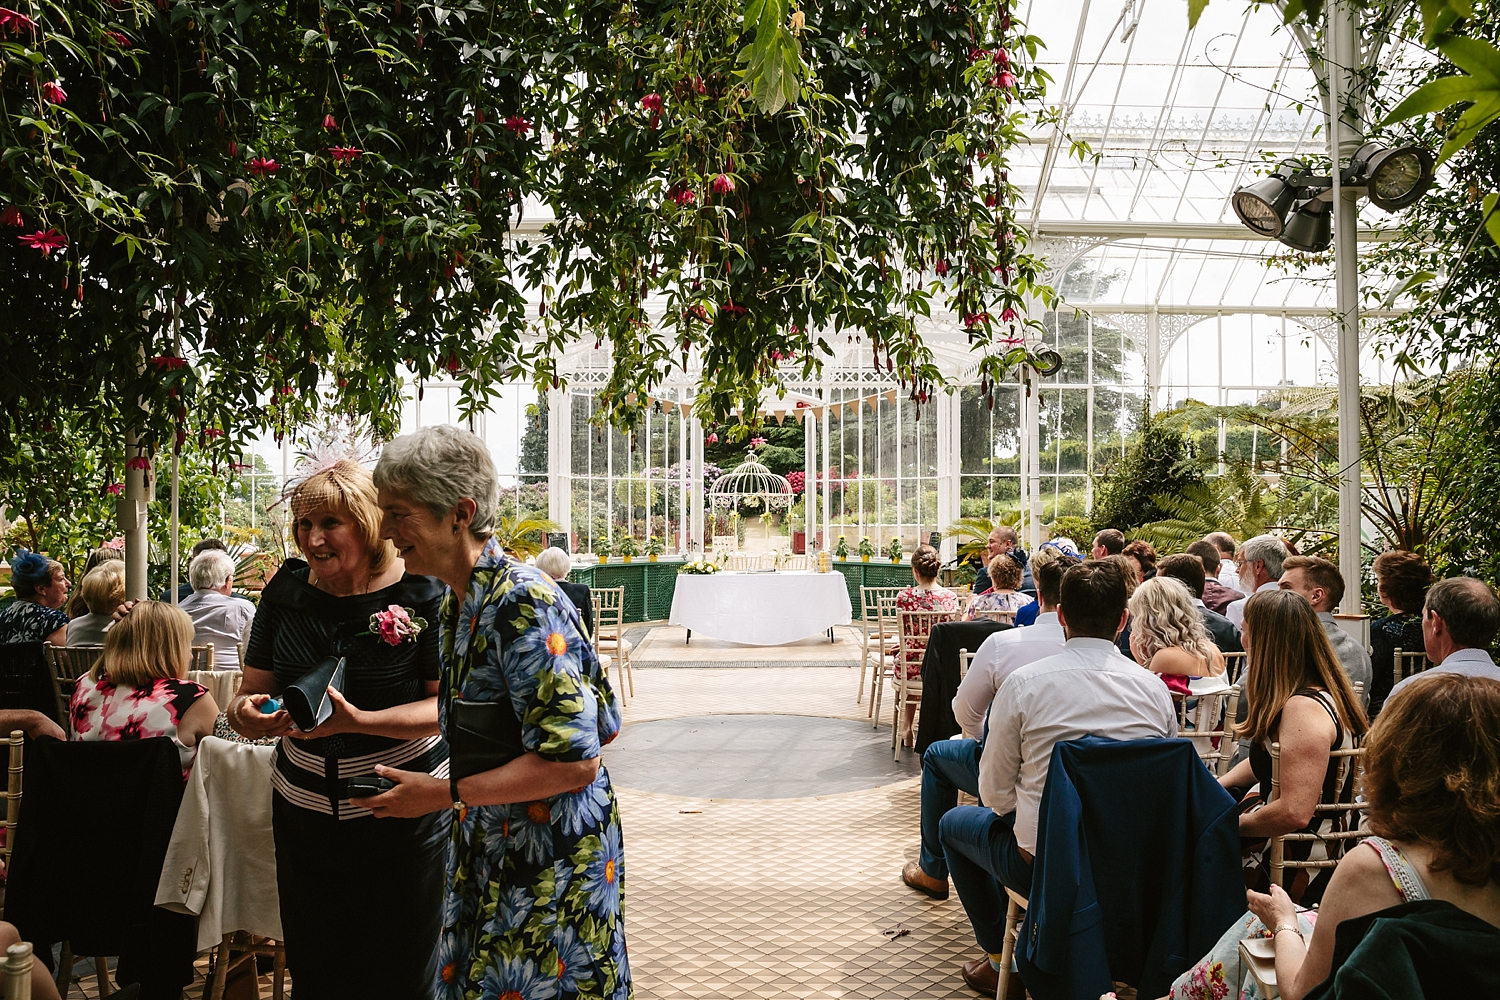 Natlie-Matthew-yorkshire-natural-relaxed-fun-documentary-reportage-candid-wedding-photography-photographer-Derby-Nottingham-Derbyshire-Nottinghamshire-Leicestershire-Lincolnshire-East-Midlands-34.jpg